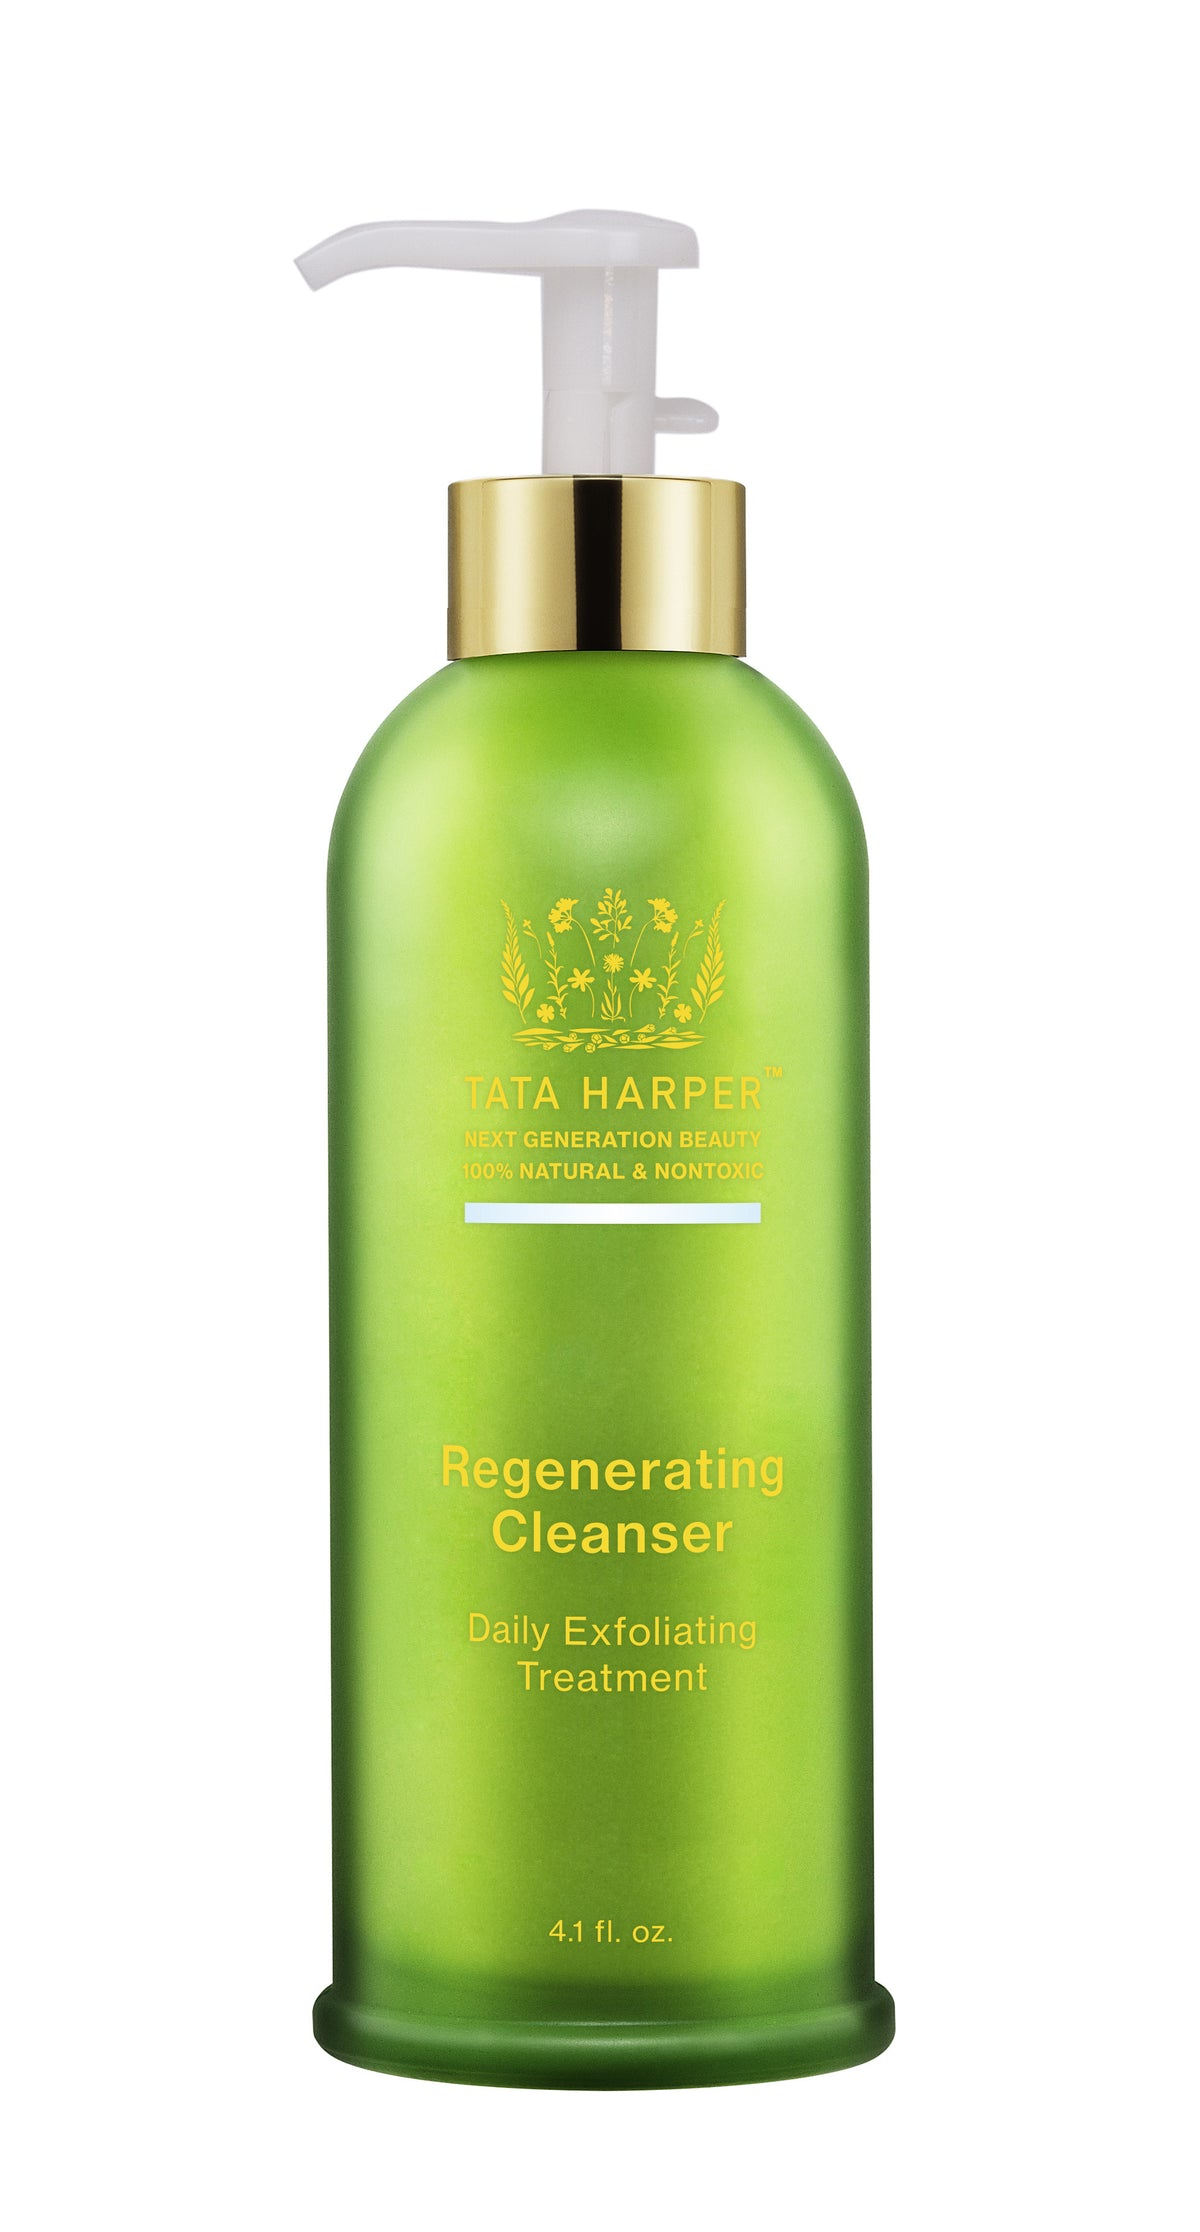 tata harper | regenerating cleanser[product_type ]tata harper - Kiss and Makeup